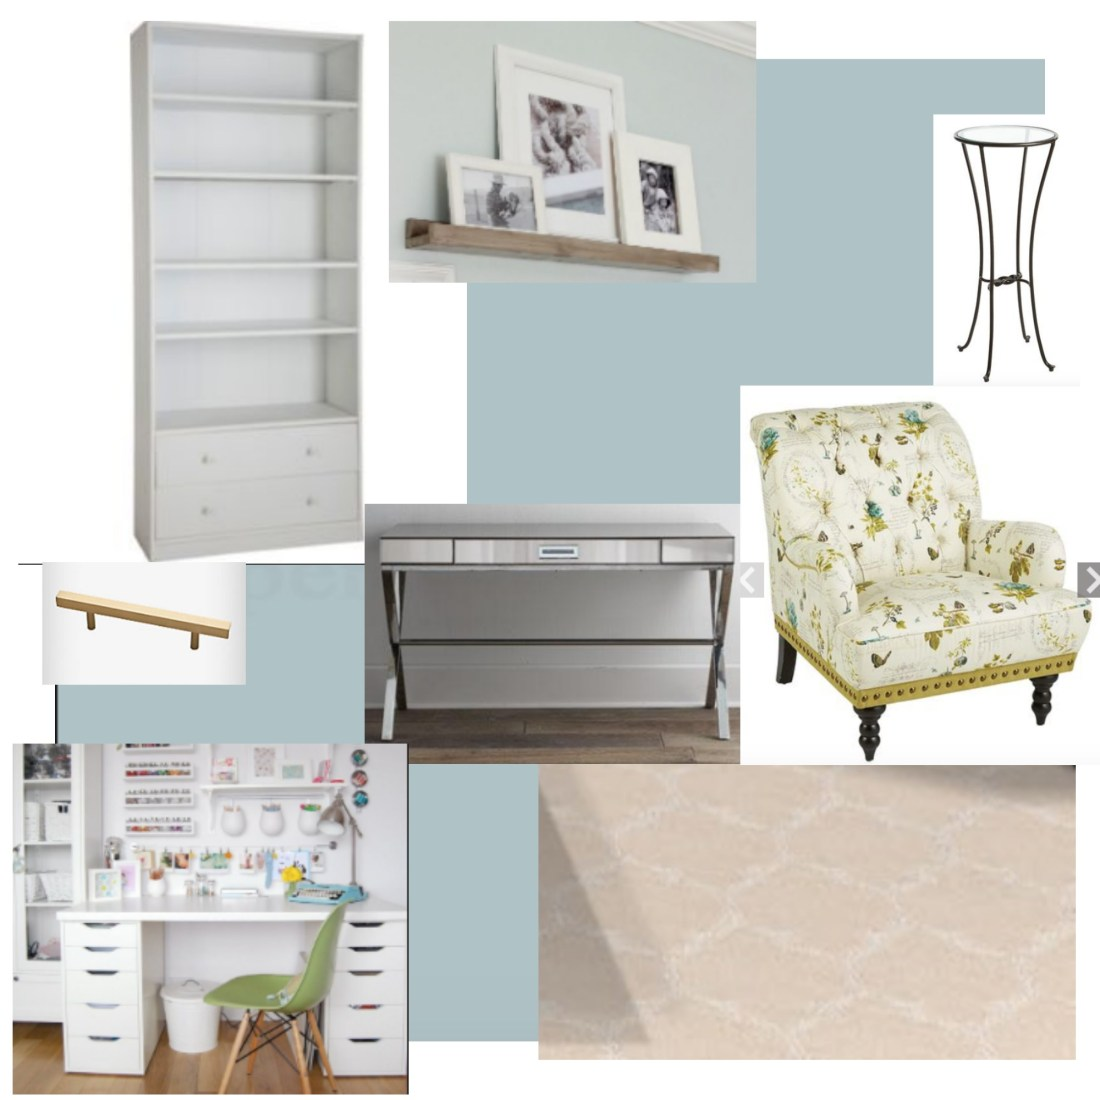 ORC challenge, home office, One room challenge, home office makeover, home office mood board